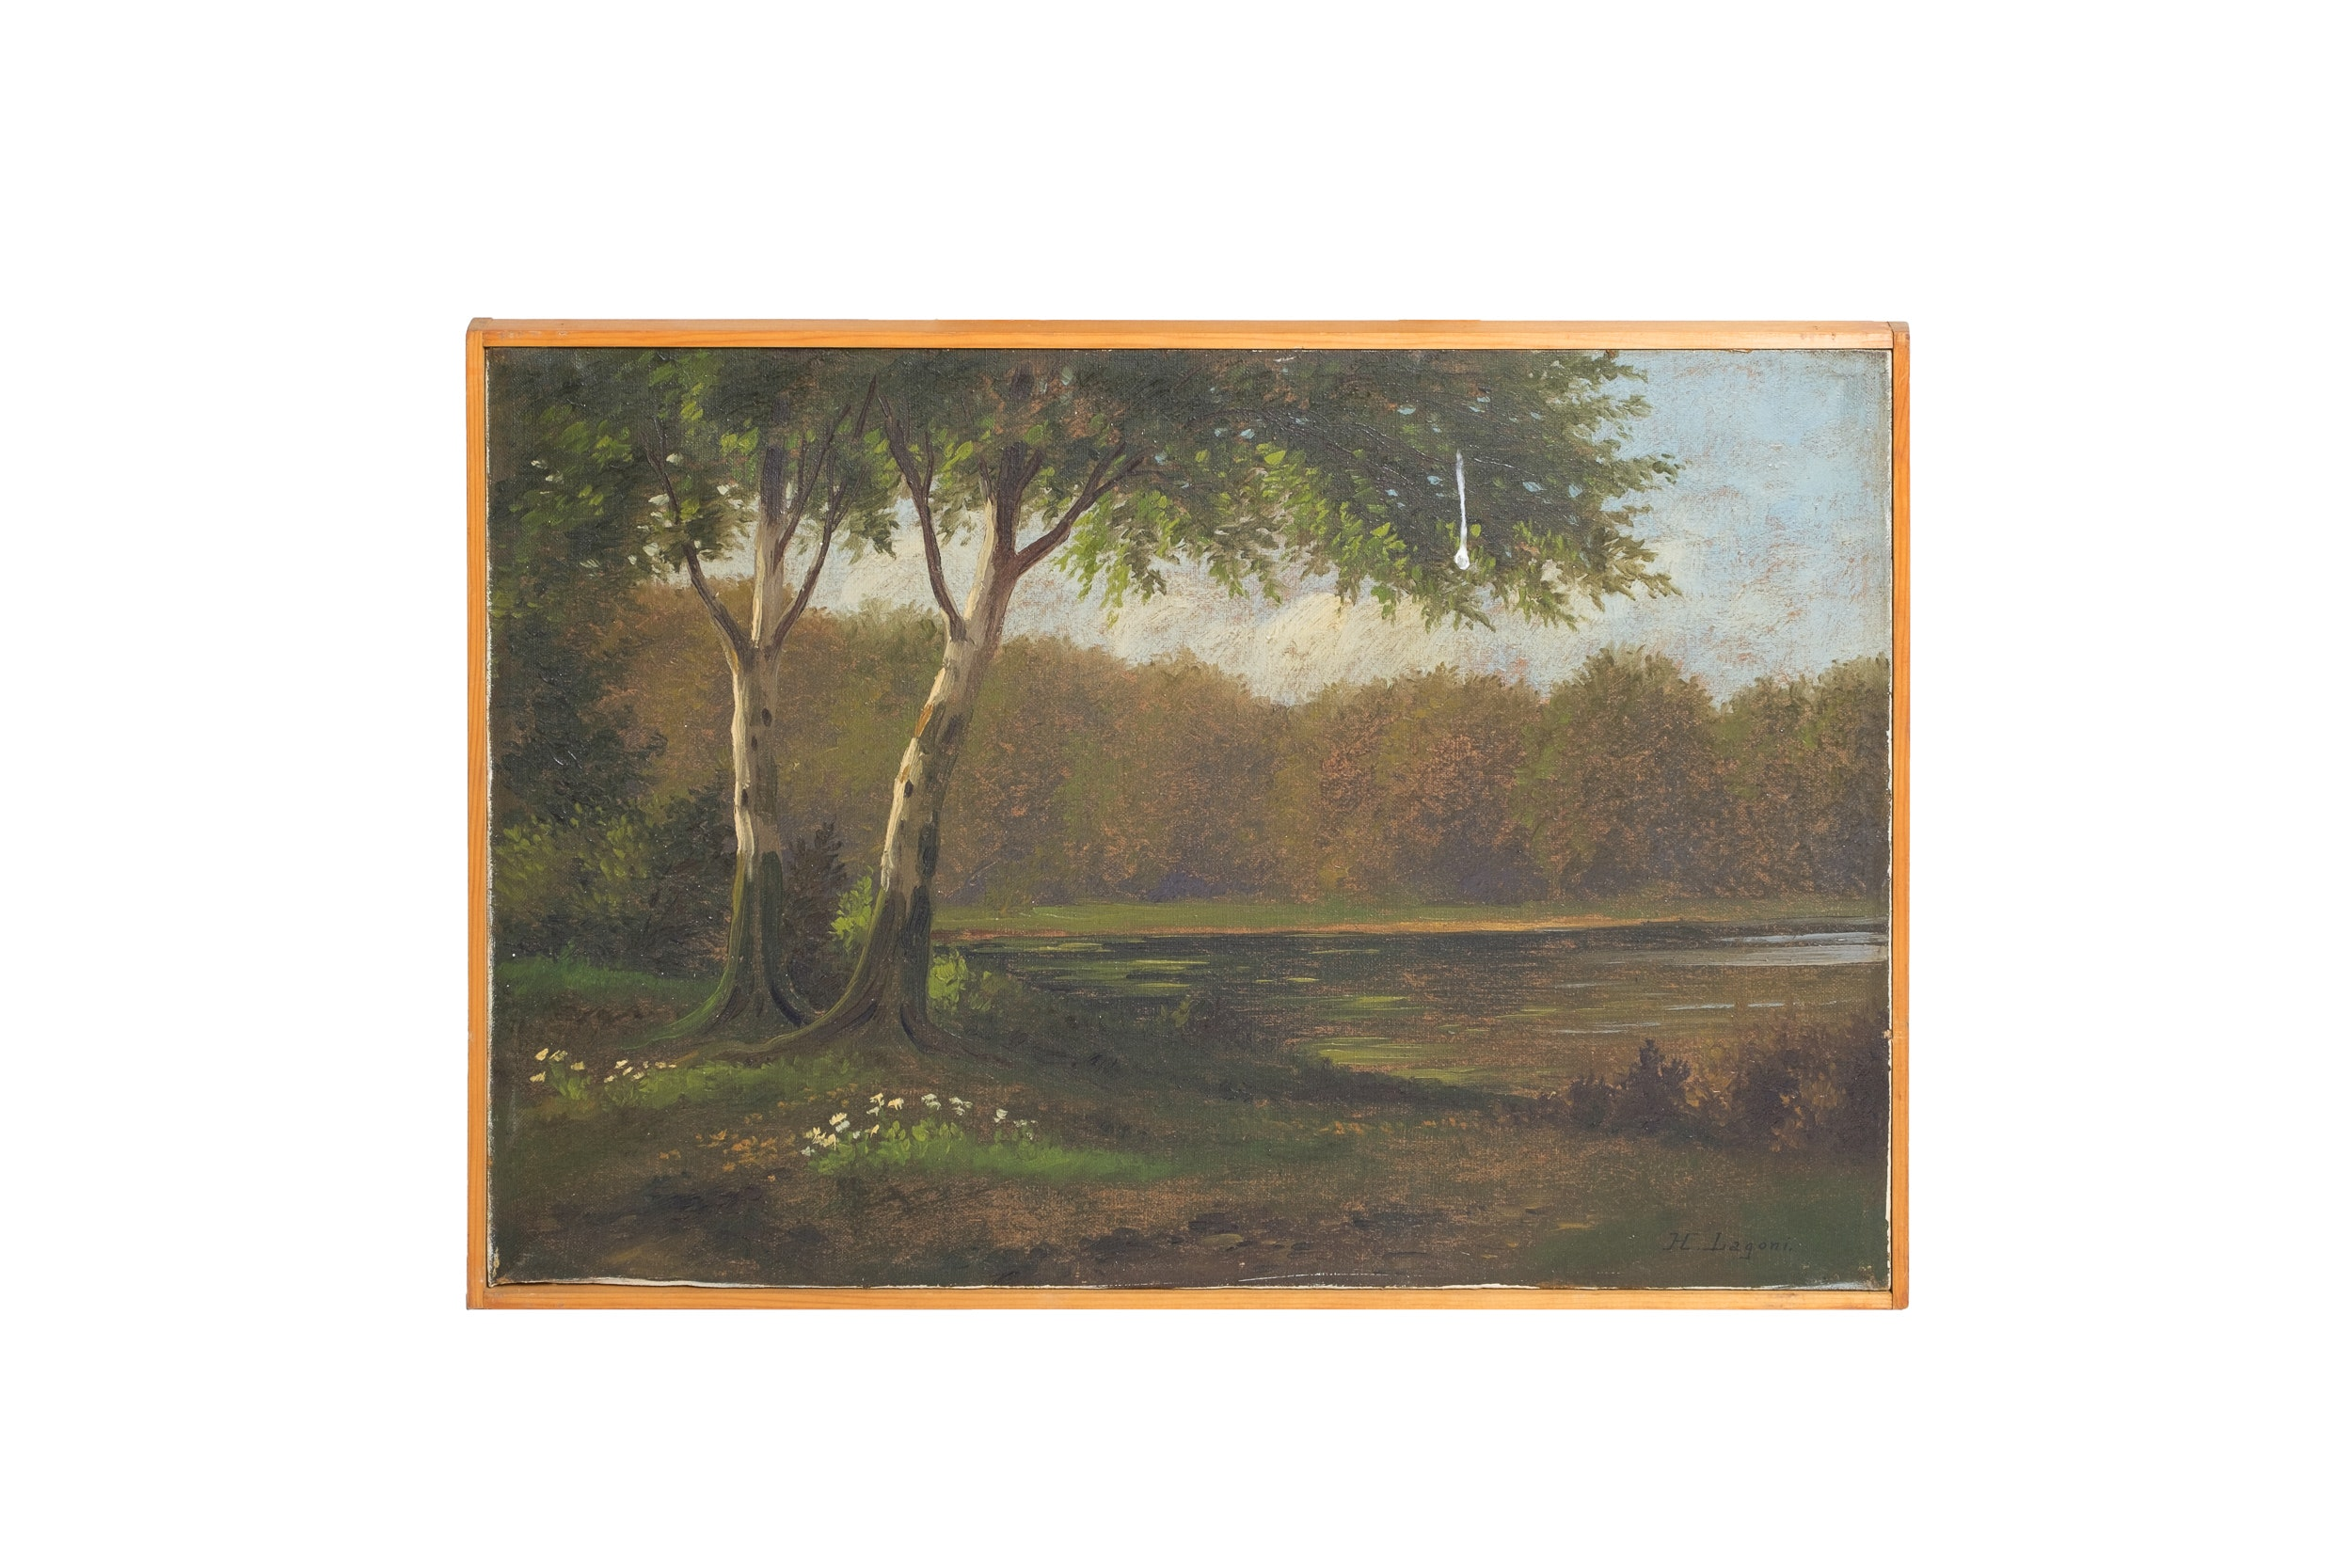 H. Lagoni Oil Painting of Landscape